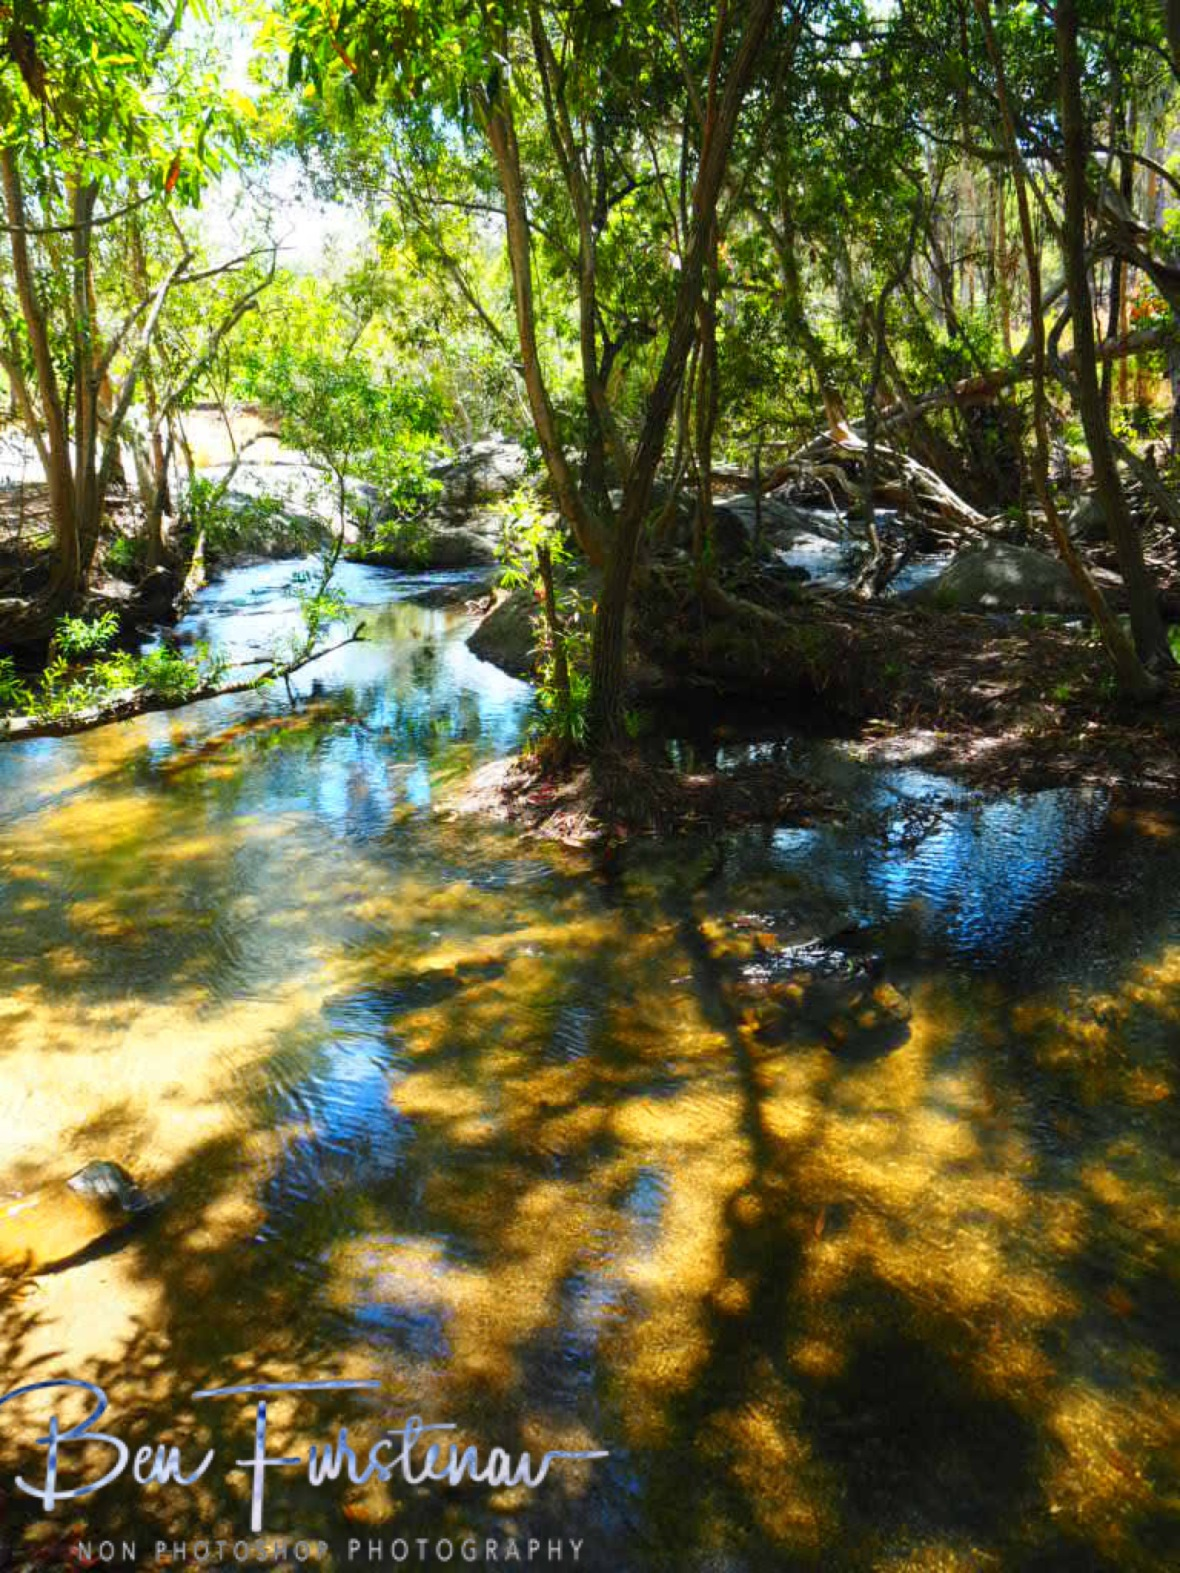 Shallow but cooling waters at Upper Davies Creek, Atherton Tablelands, Far North Queensland, Australia